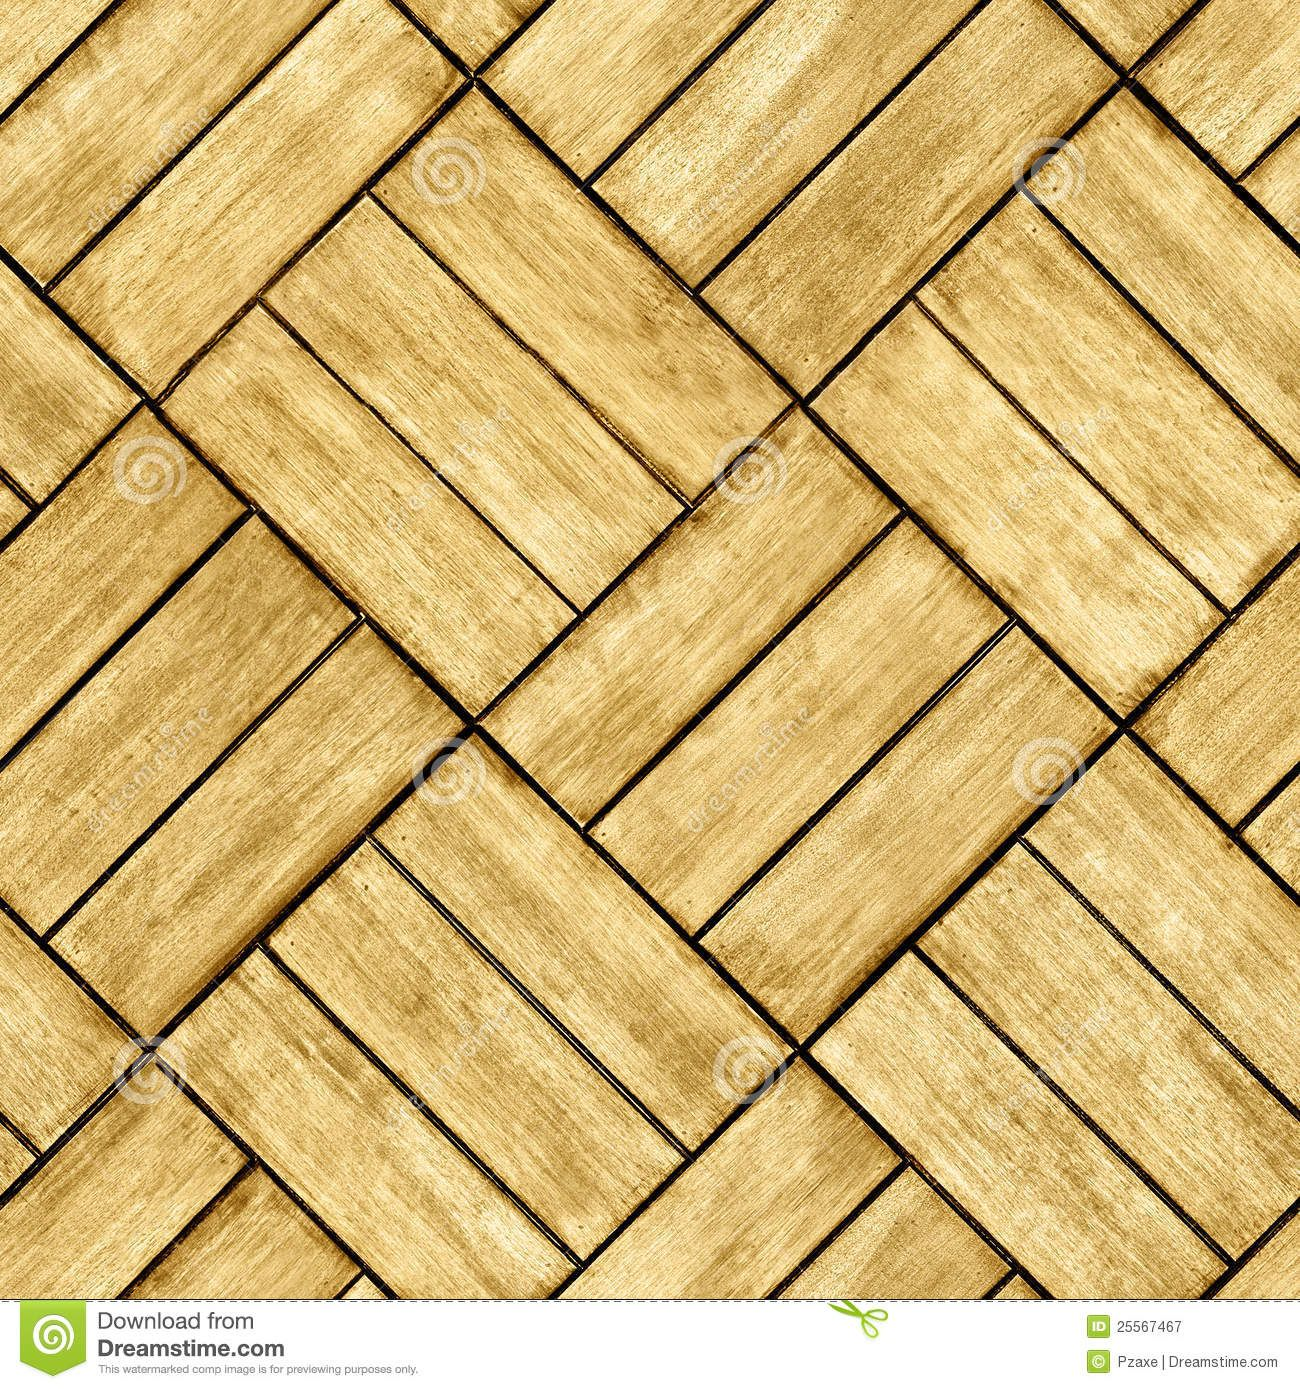 Parquet Floor Seamless Texture Royalty Free Stock